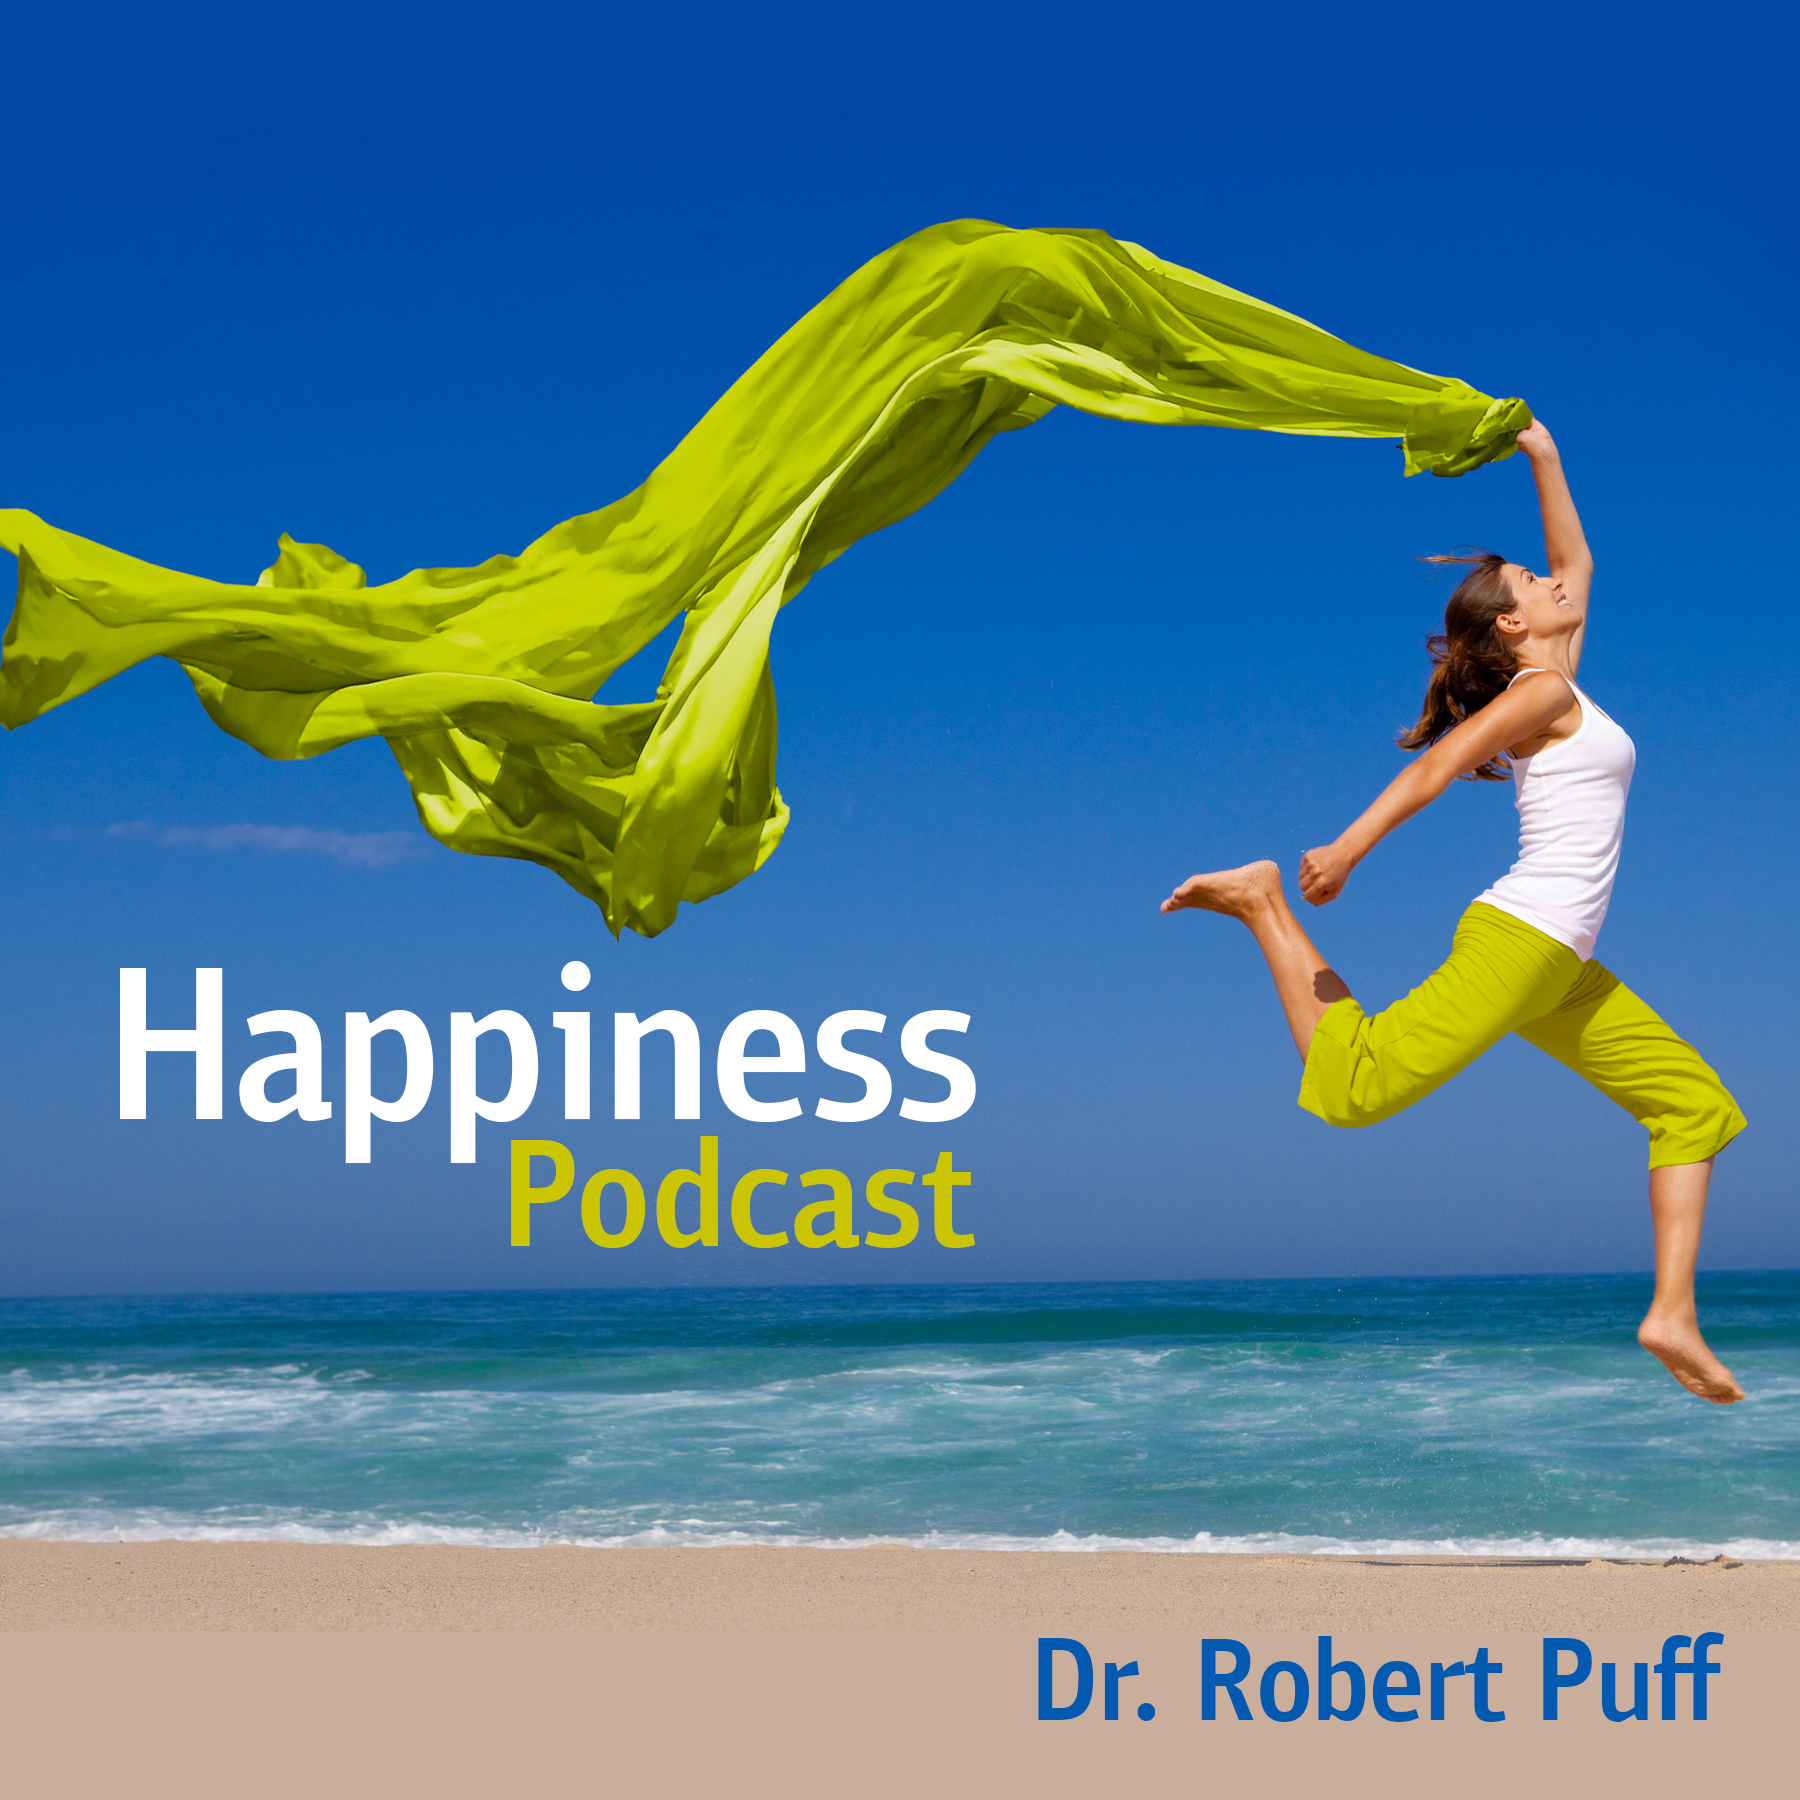 Happiness Podcast